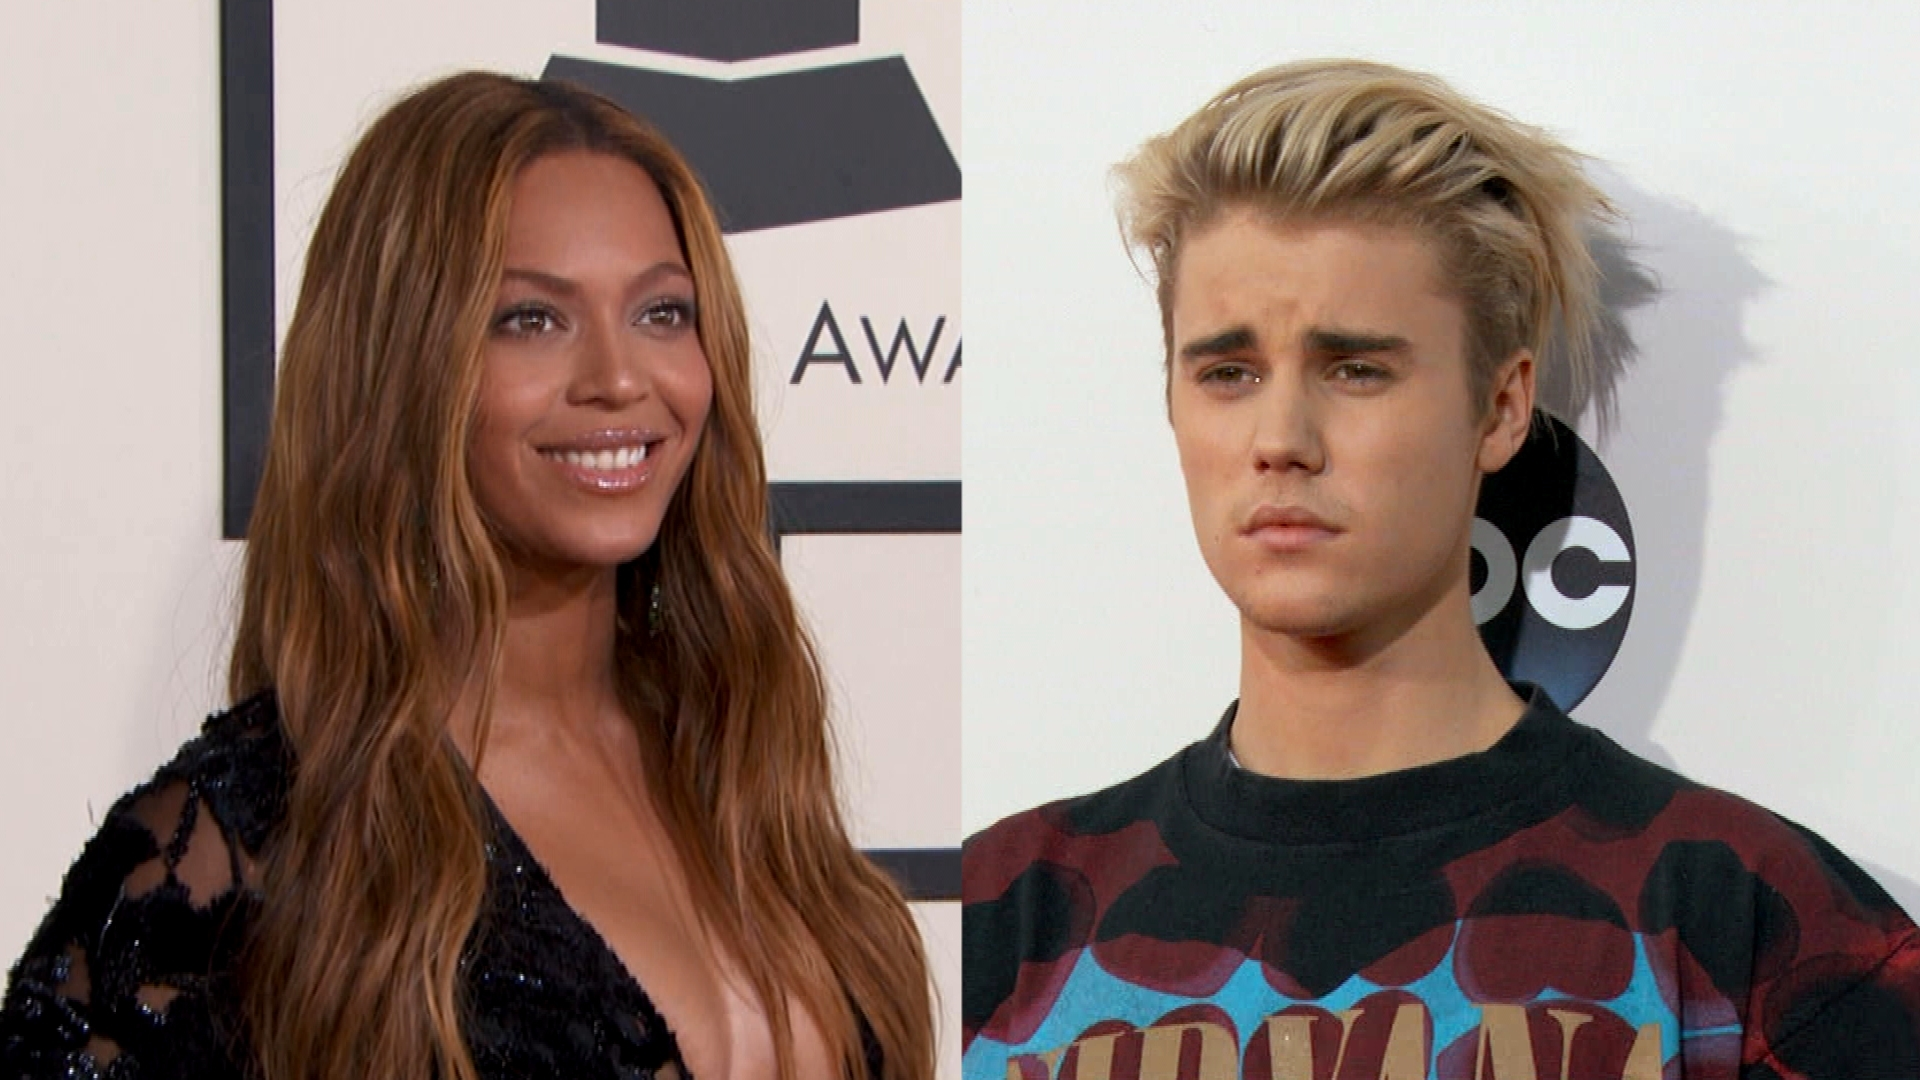 Justin Bieber Stays in Same Airbnb As Beyonce